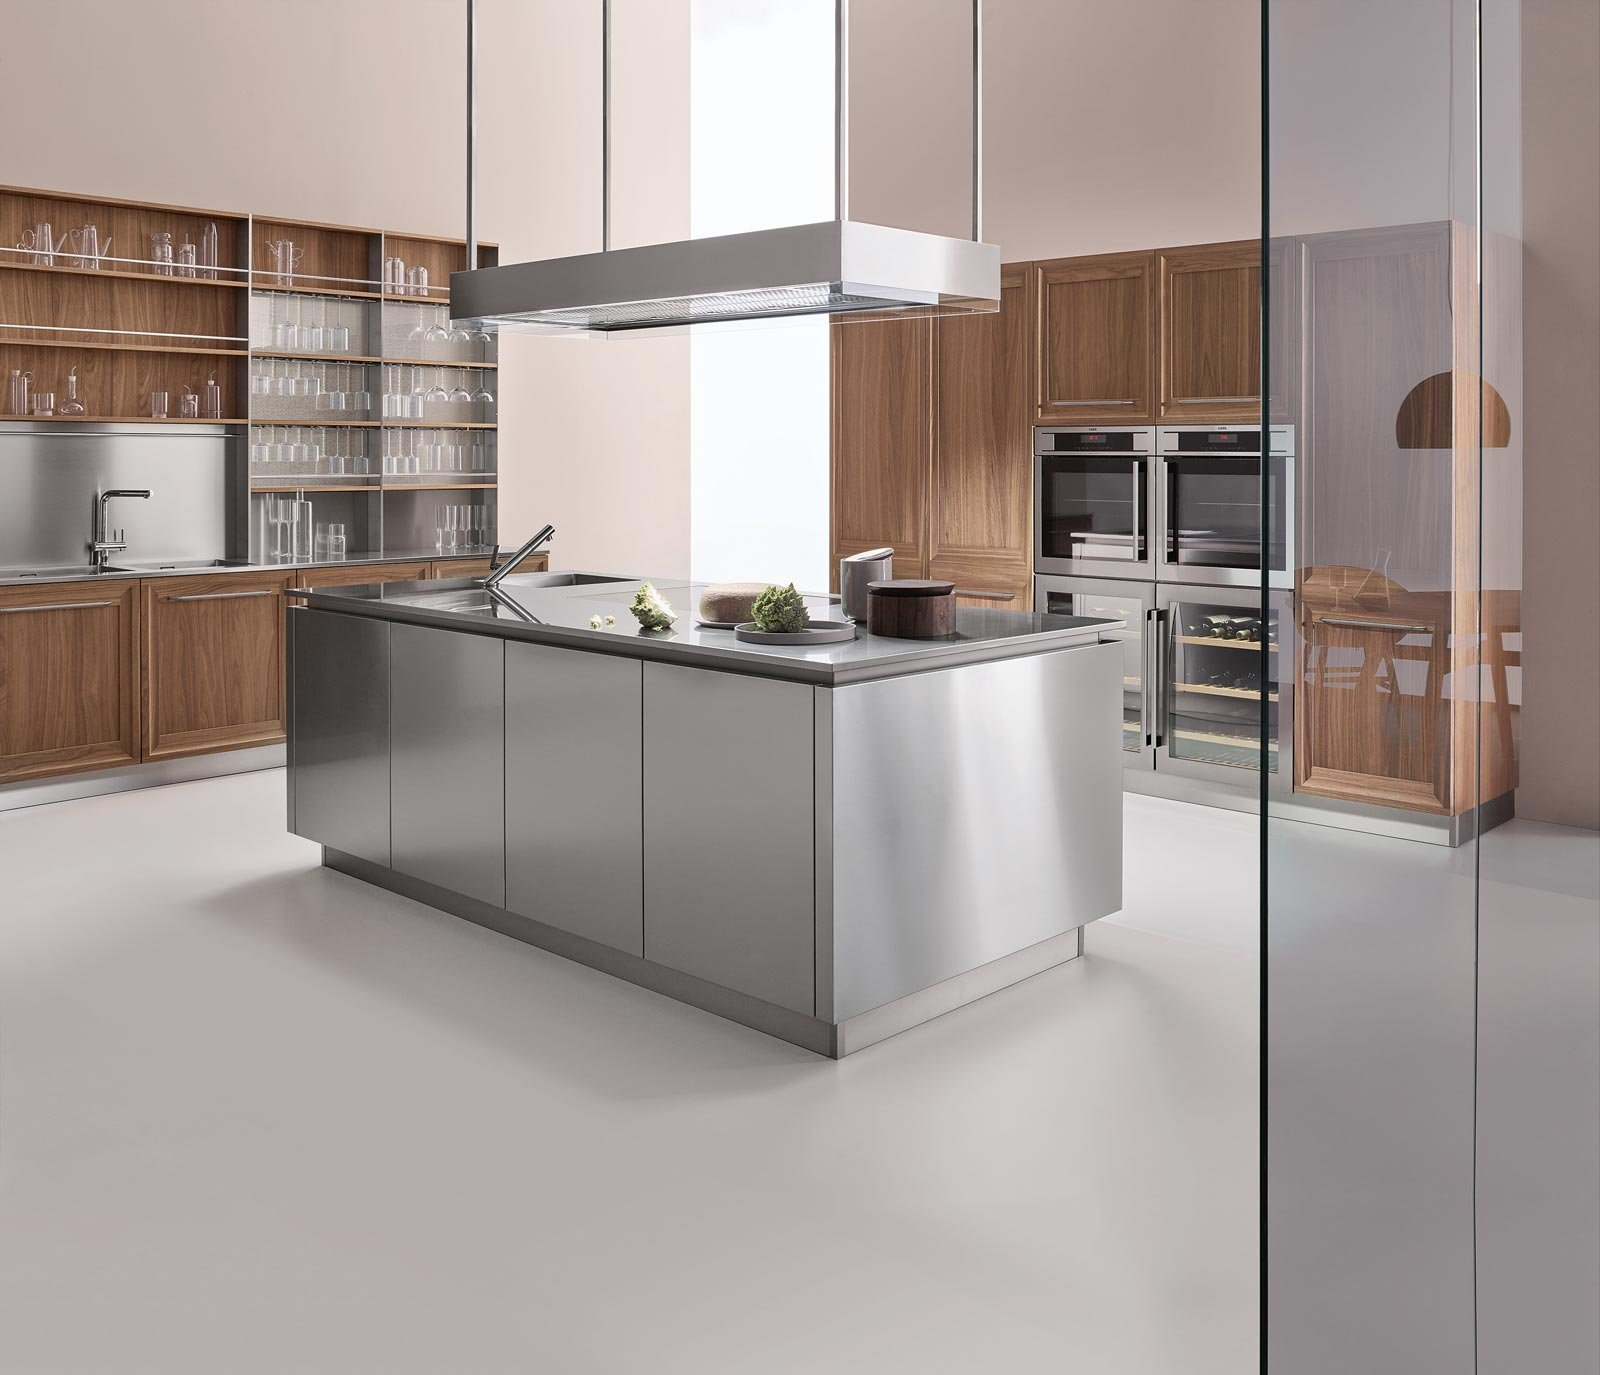 Best Veneta Cucine Roma Ideas - Amazing House Design - getfitamerica.us